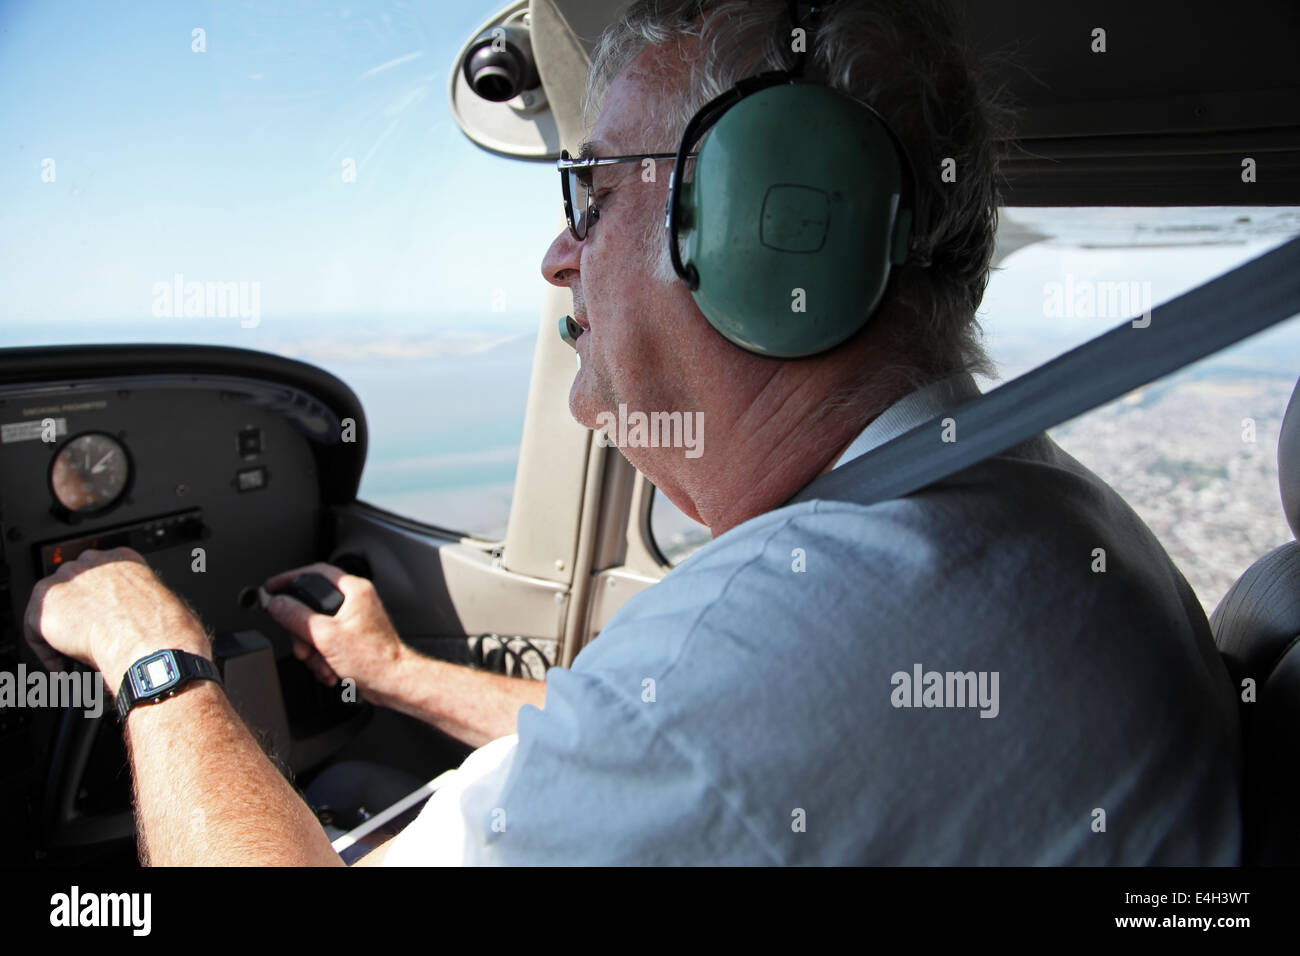 a pilot called David Hockings at the controls of his Cessna C172 flying over Essex - Stock Image